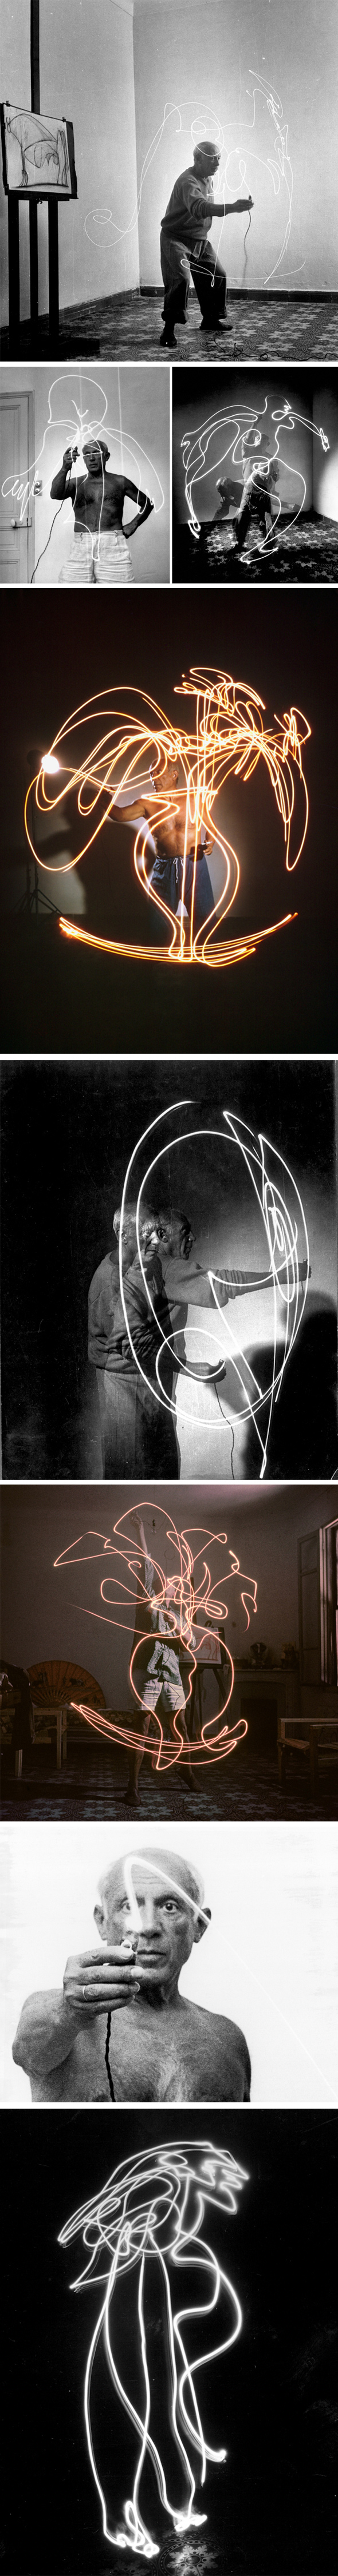 Light Drawings by Pablo Picasso